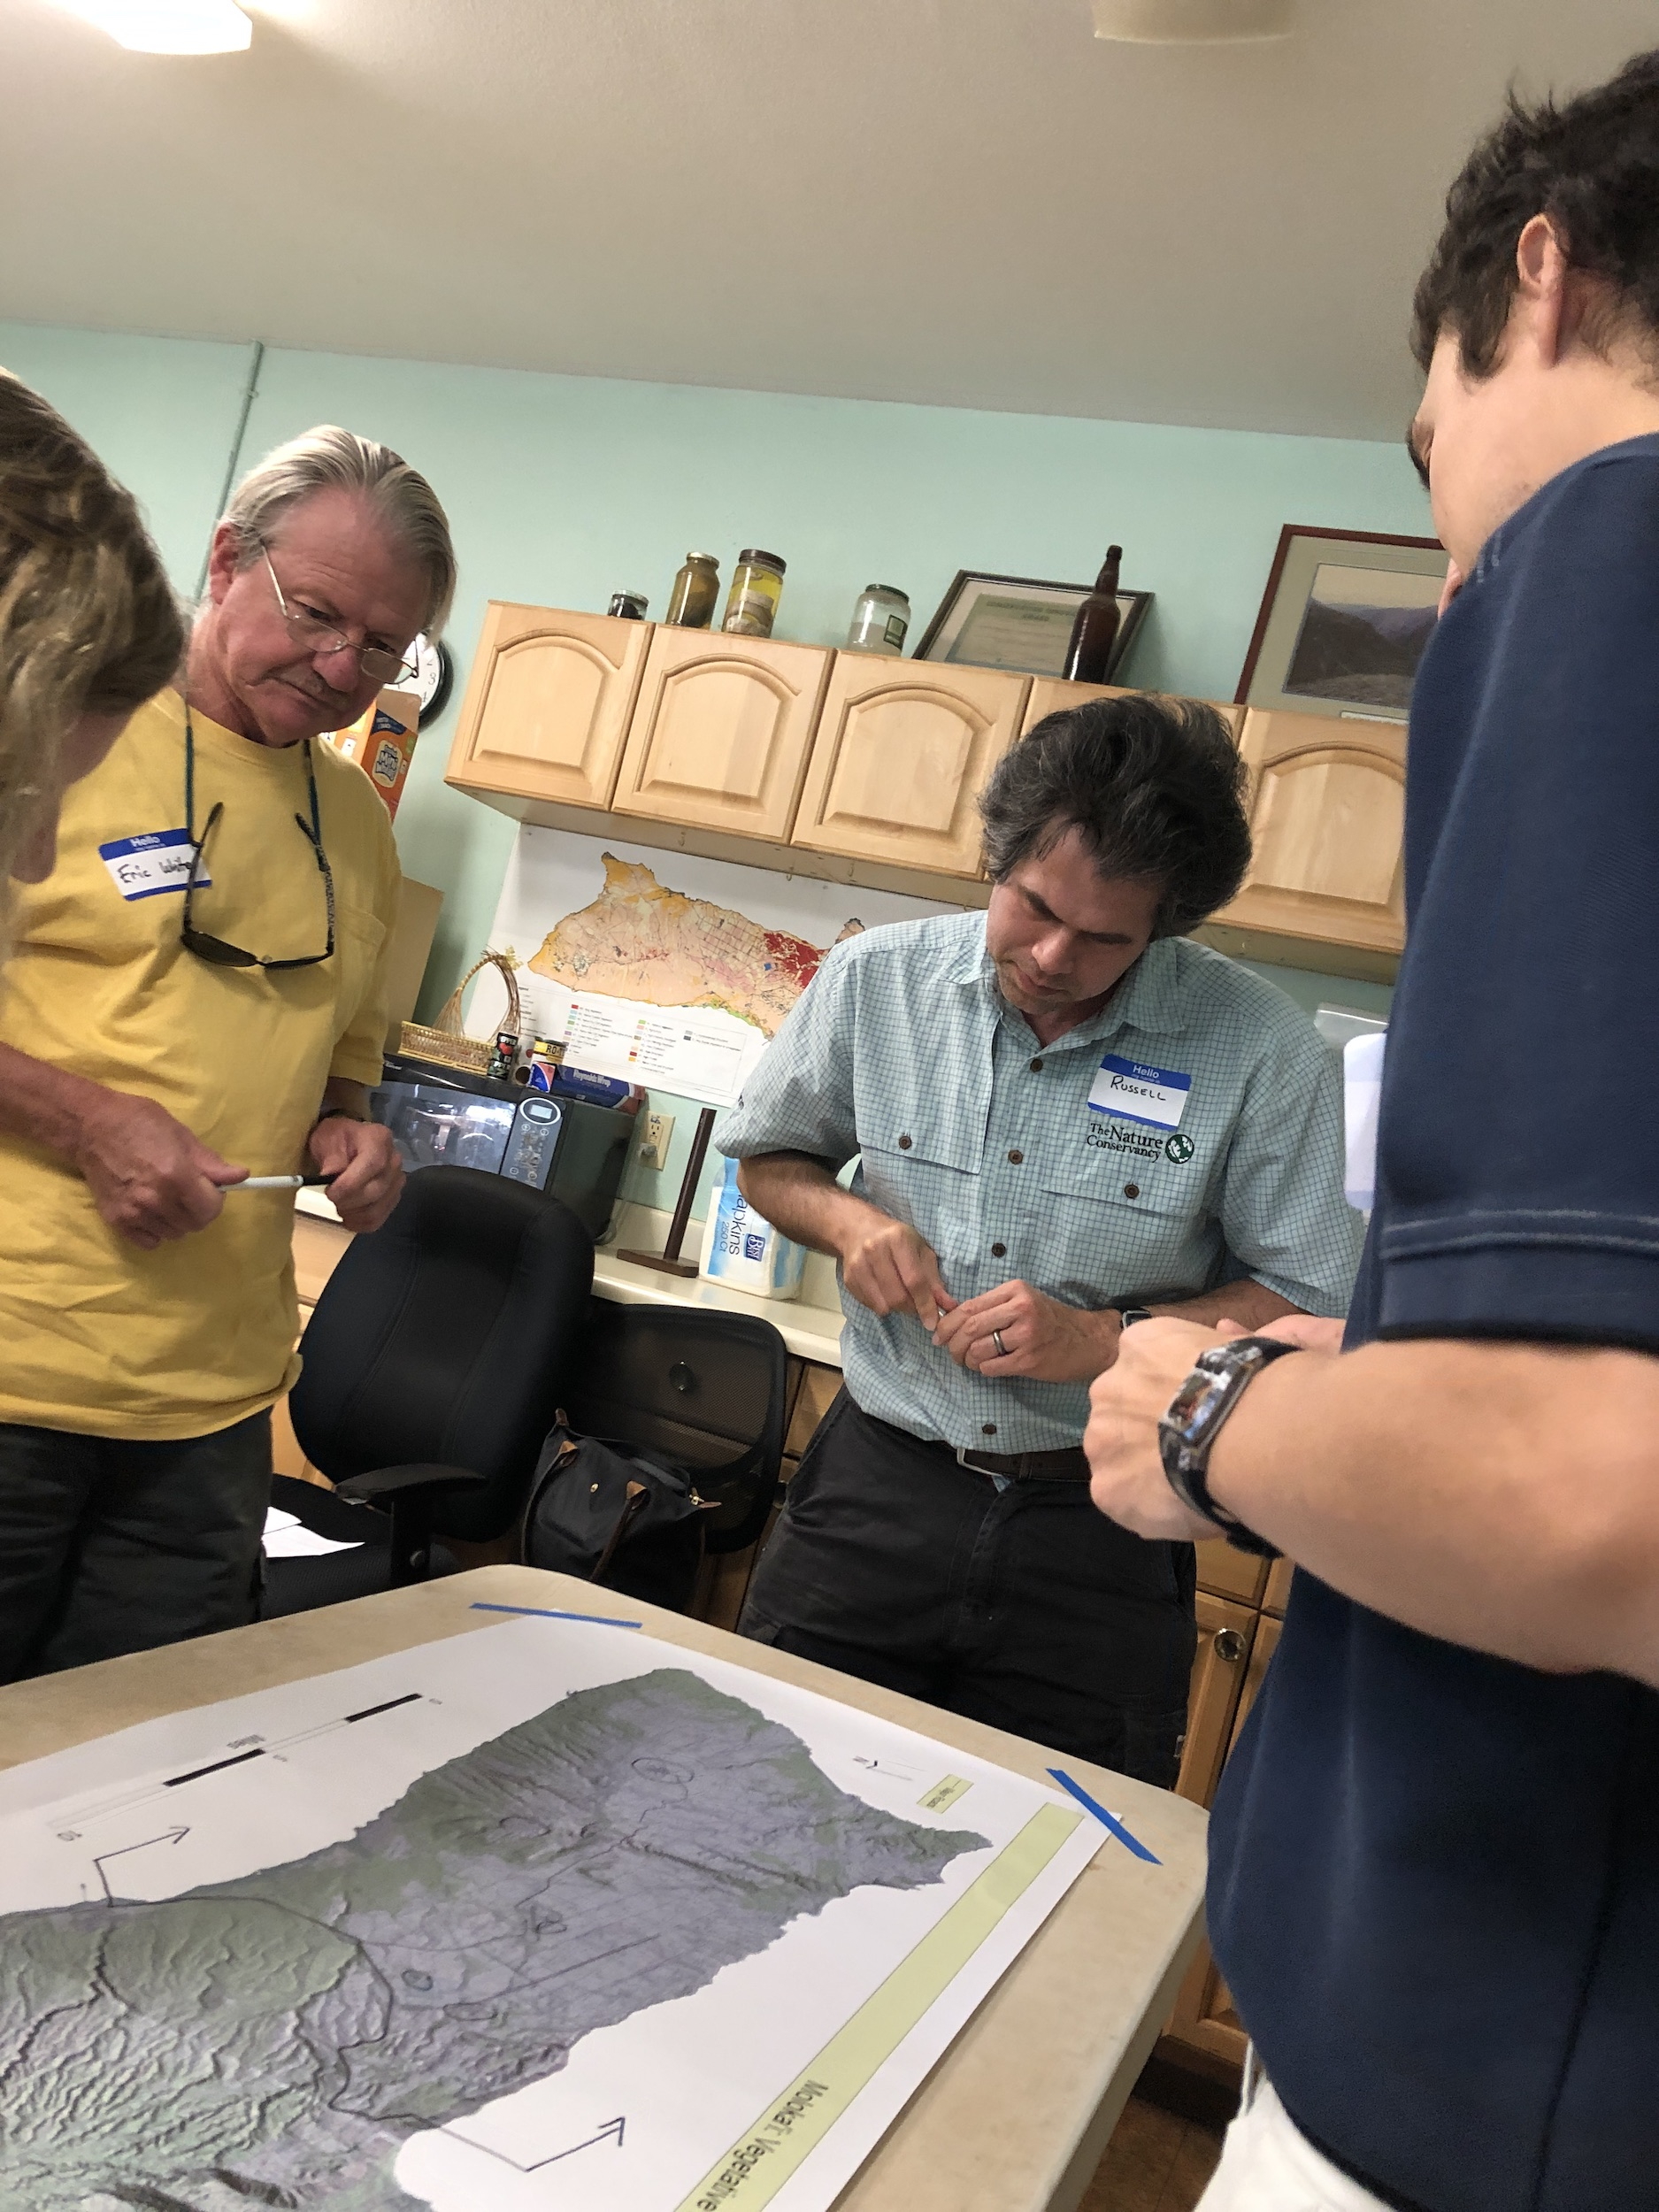 Molokai Vegetative Fuels Management Collaborative Action Planning and Mapping Workshop_4_2_2019_7.JPG